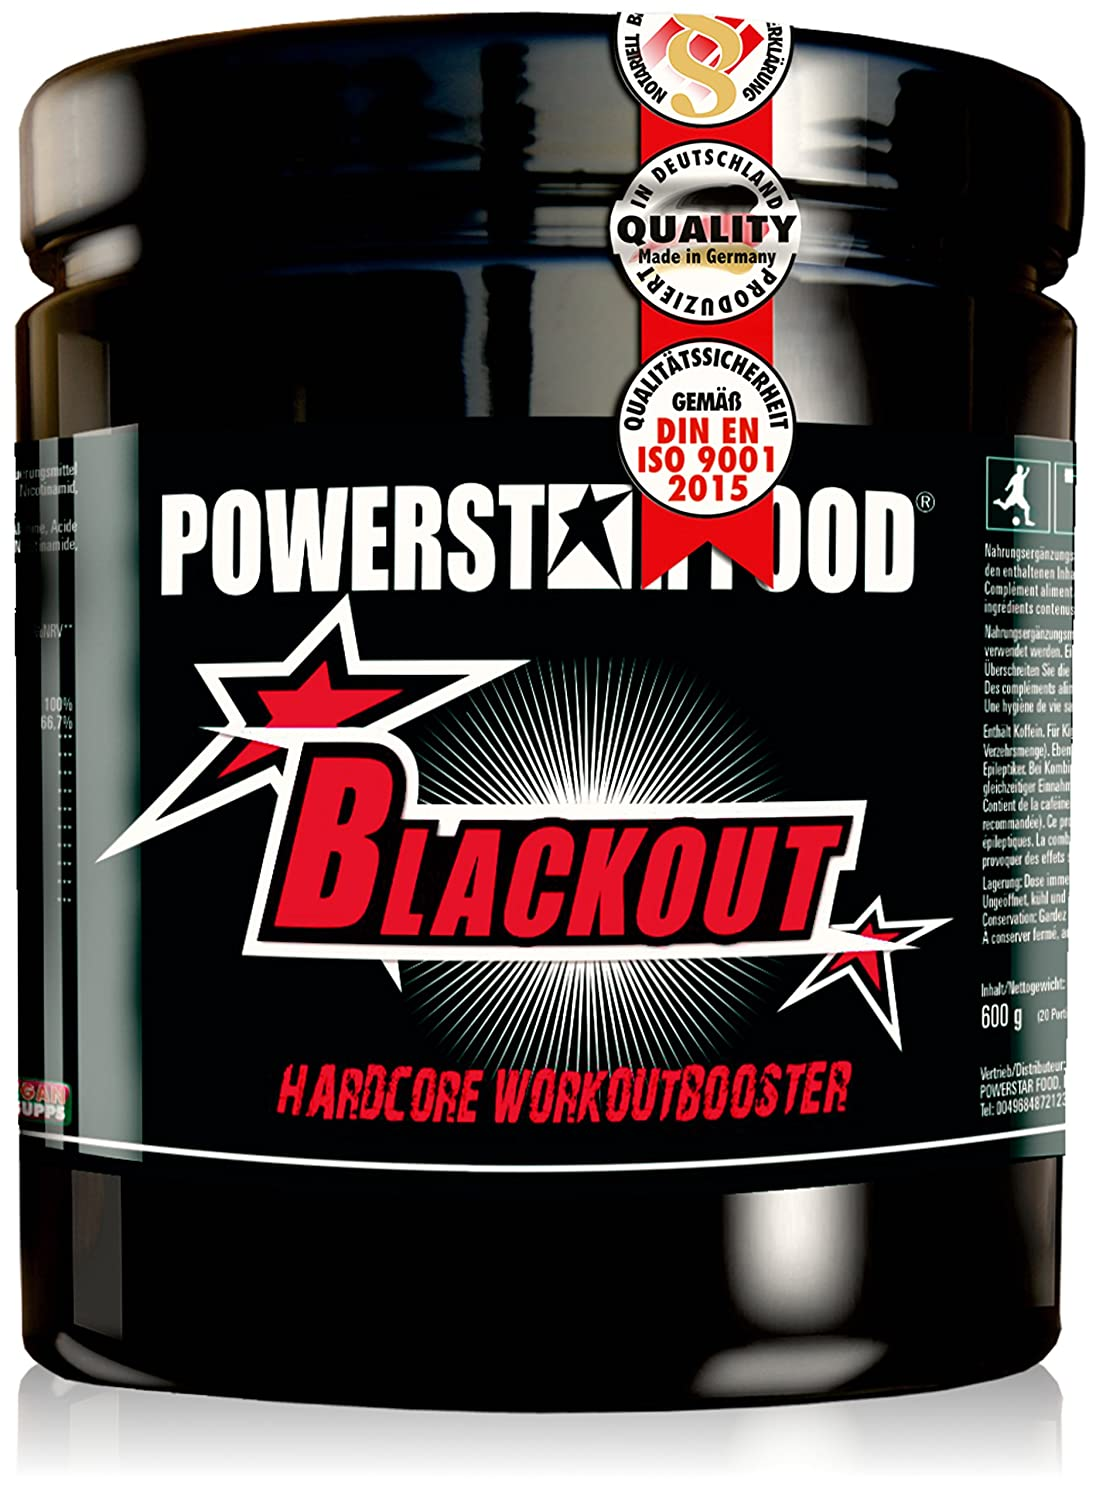 81Qop6FRwlL. SL1500  - Powerstar Blackout - Der EU Workoutbooster im Test